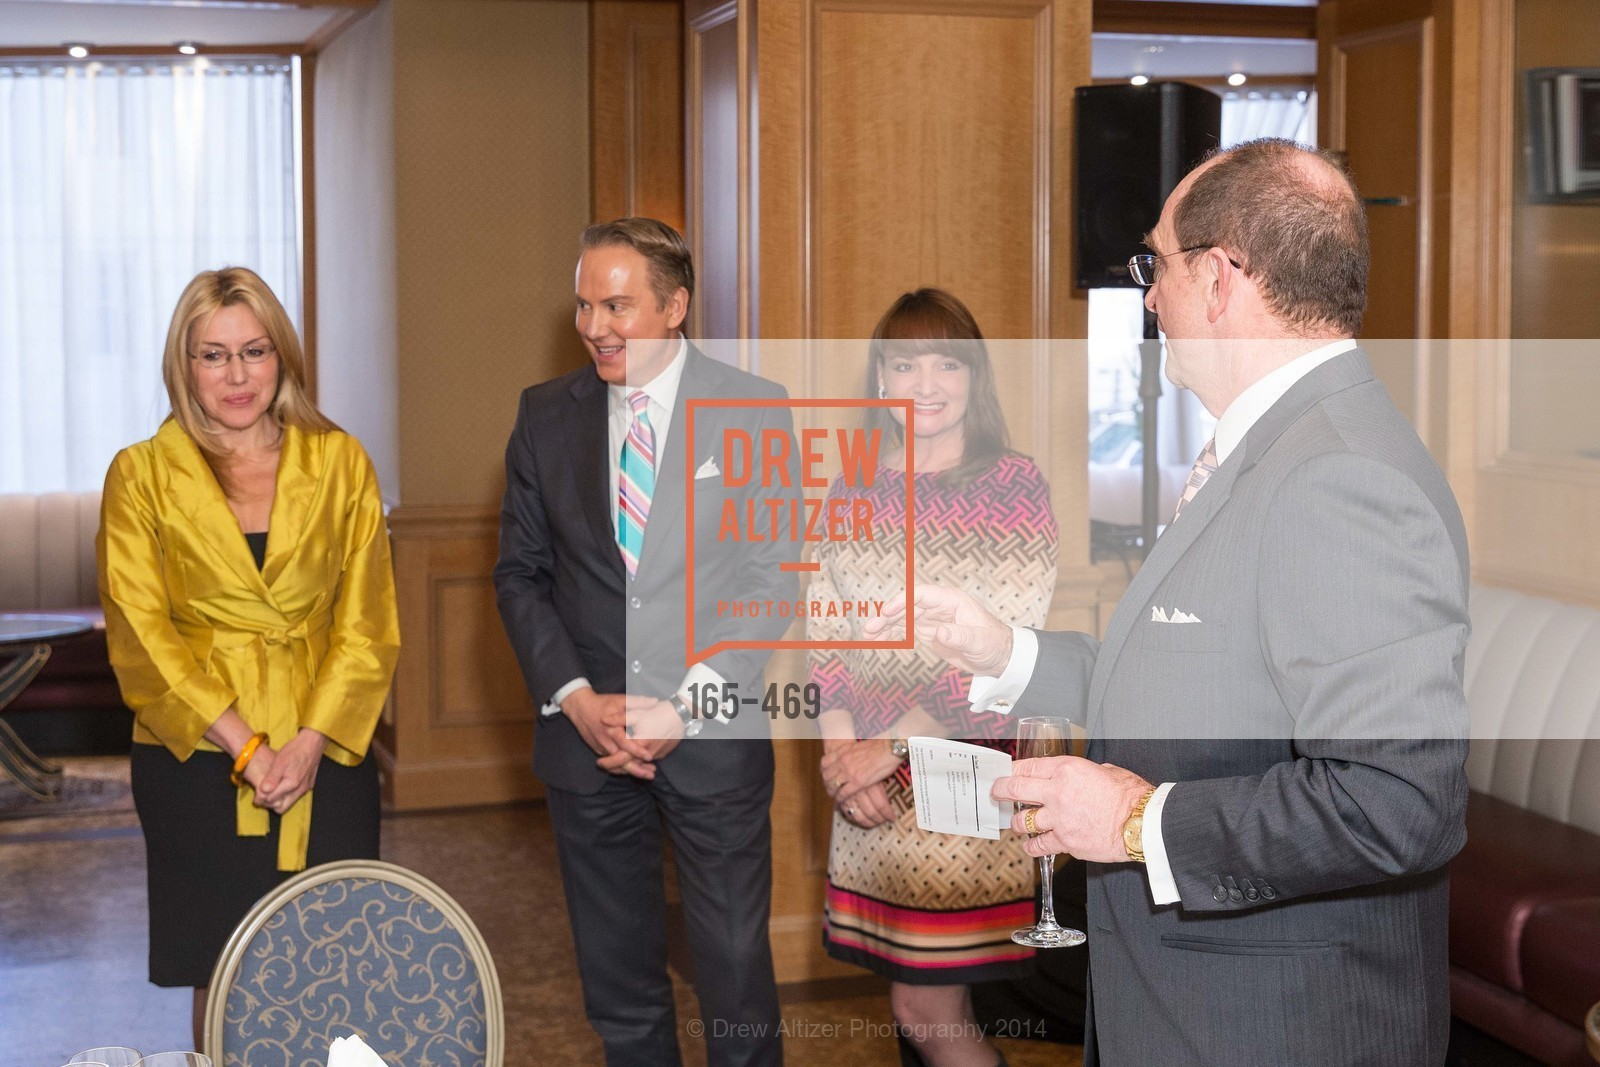 """Extras, FAIRMONT LUNCHEON for CNBC """"Secret Lives of the Super Rich."""", January 21st, 2014, Photo"""